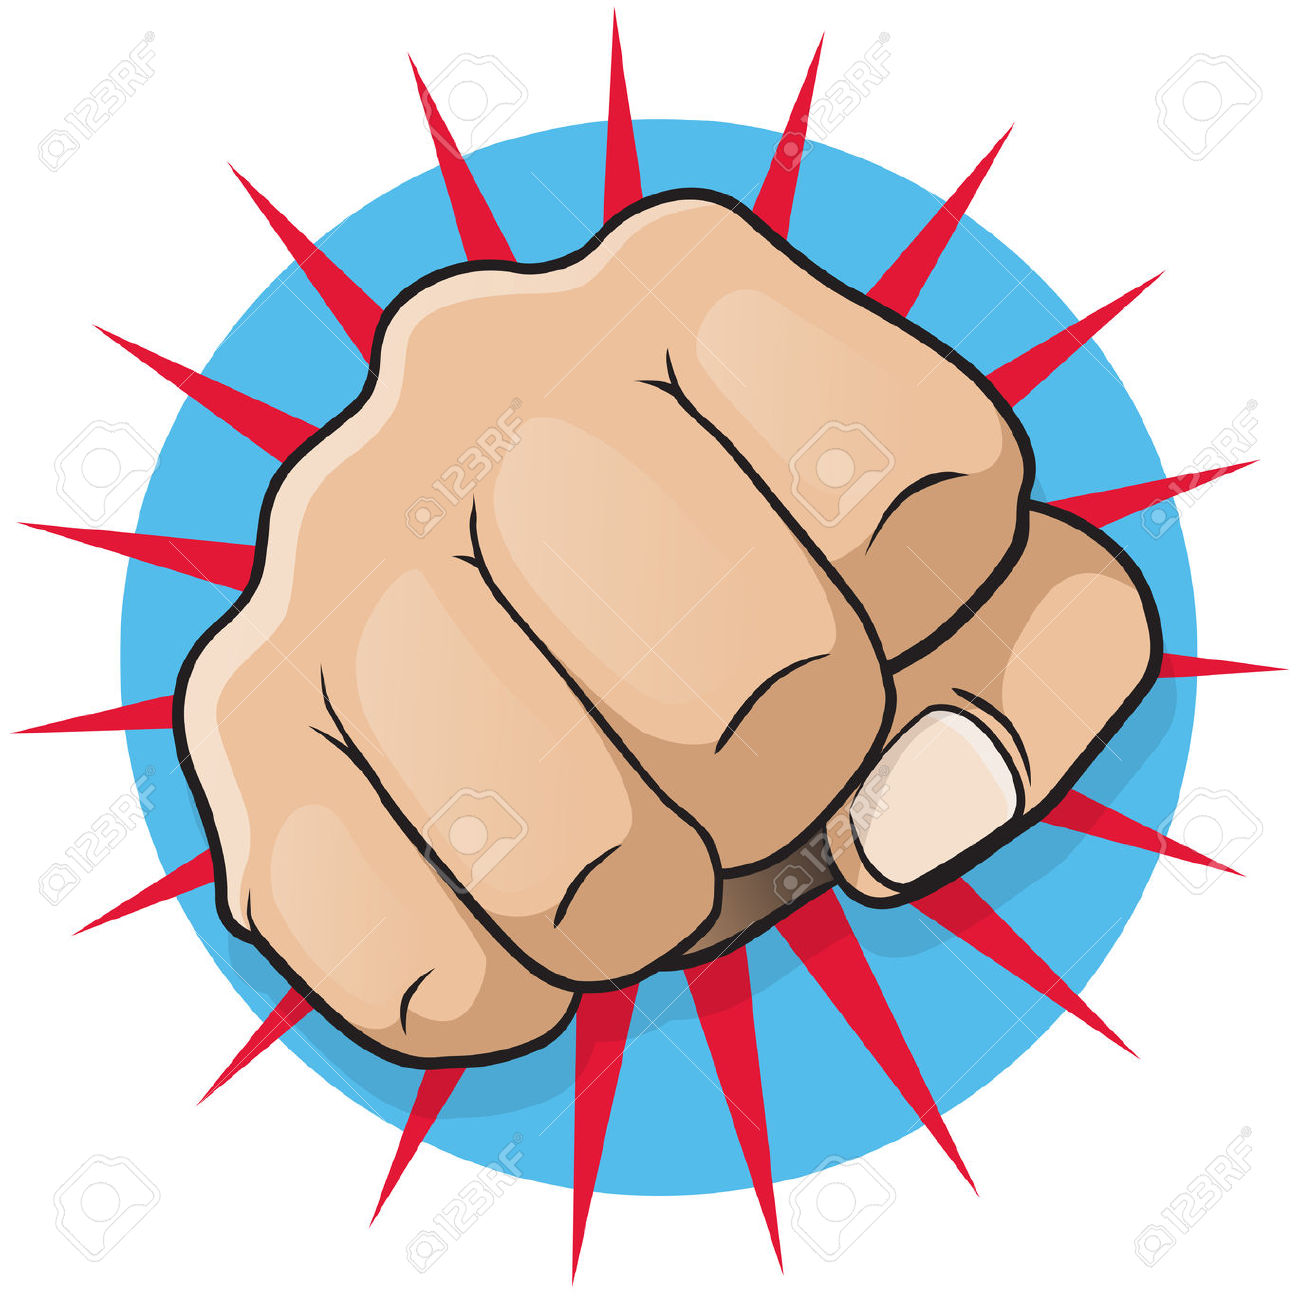 Fist punch clipart.